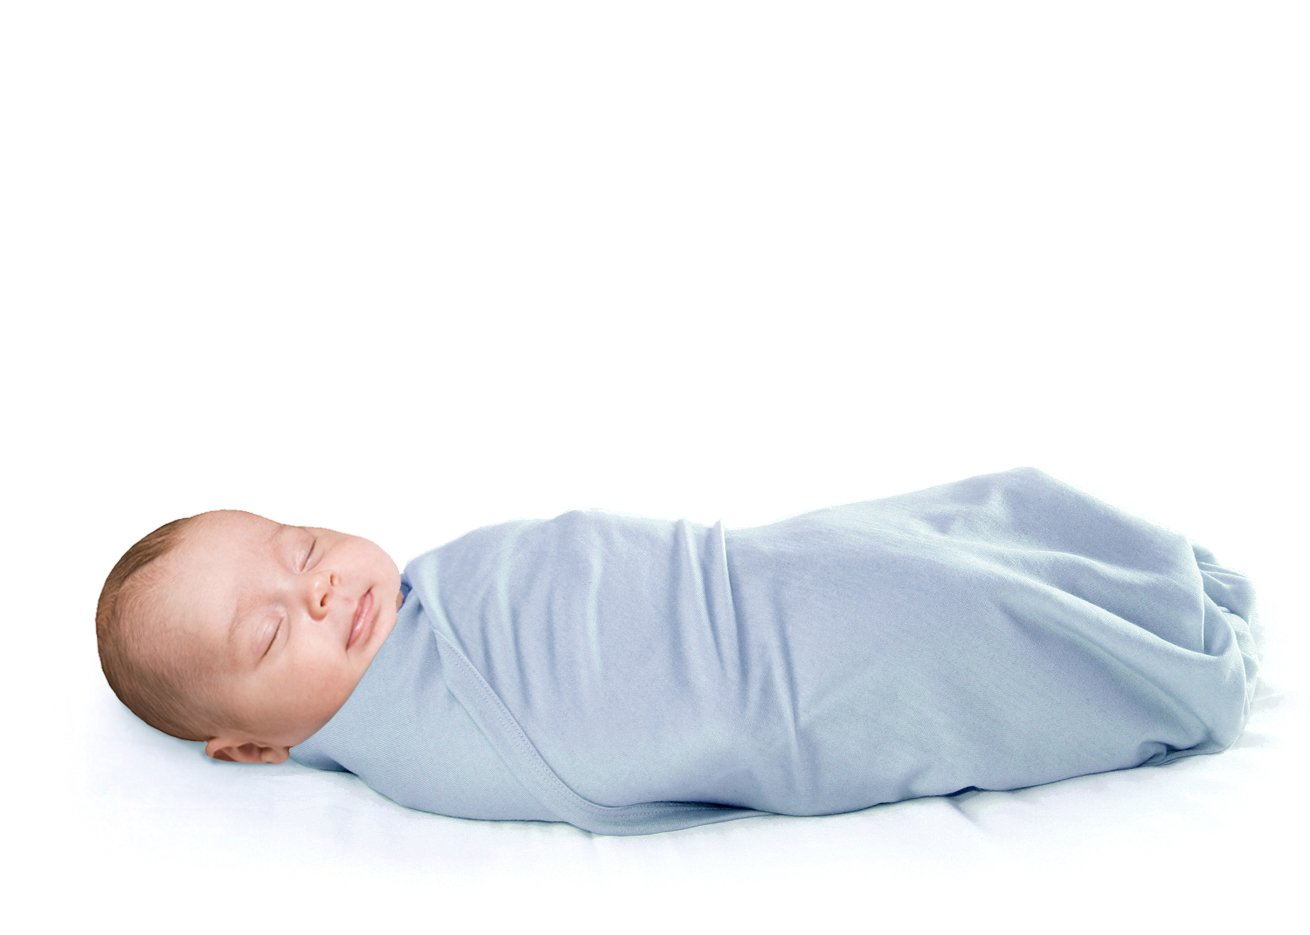 Woolino Newborn Swaddle Blanket, 100% Superfine Merino Wool, For Babies 0-3 Months, Blue